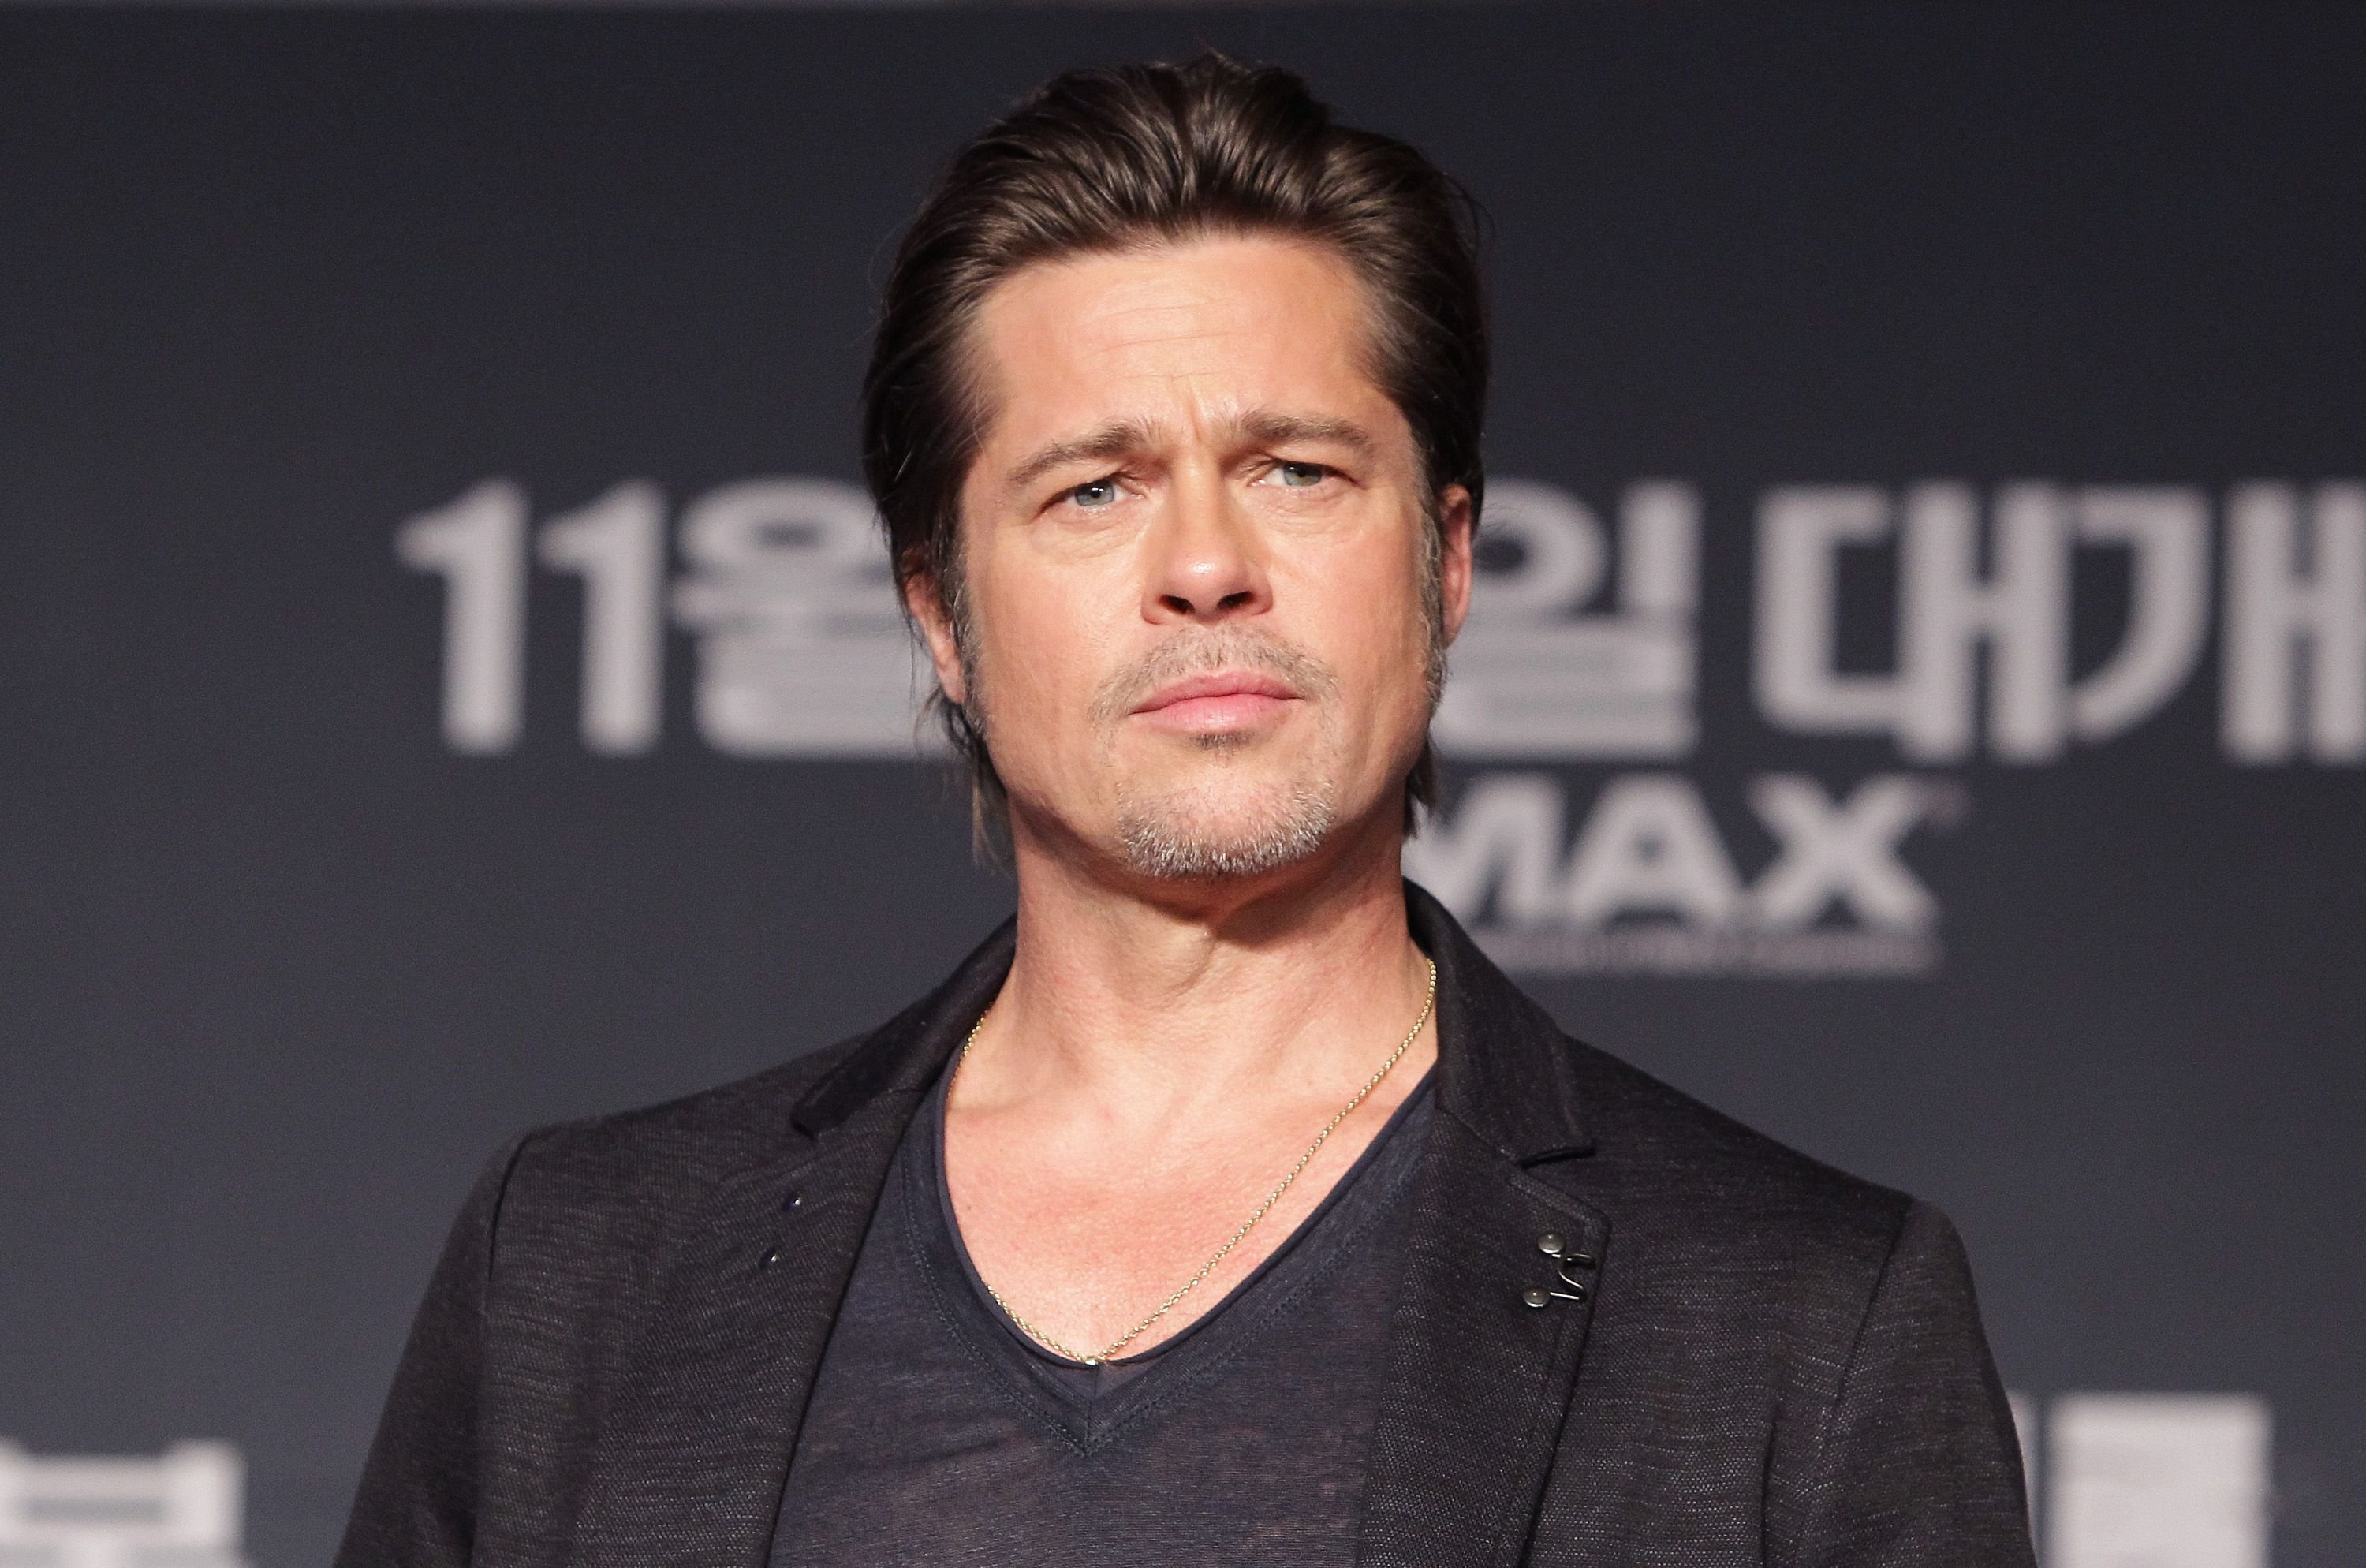 Brad Pitt and Gwyneth Paltrow unfortunately split up for unknown reasons / Getty Images